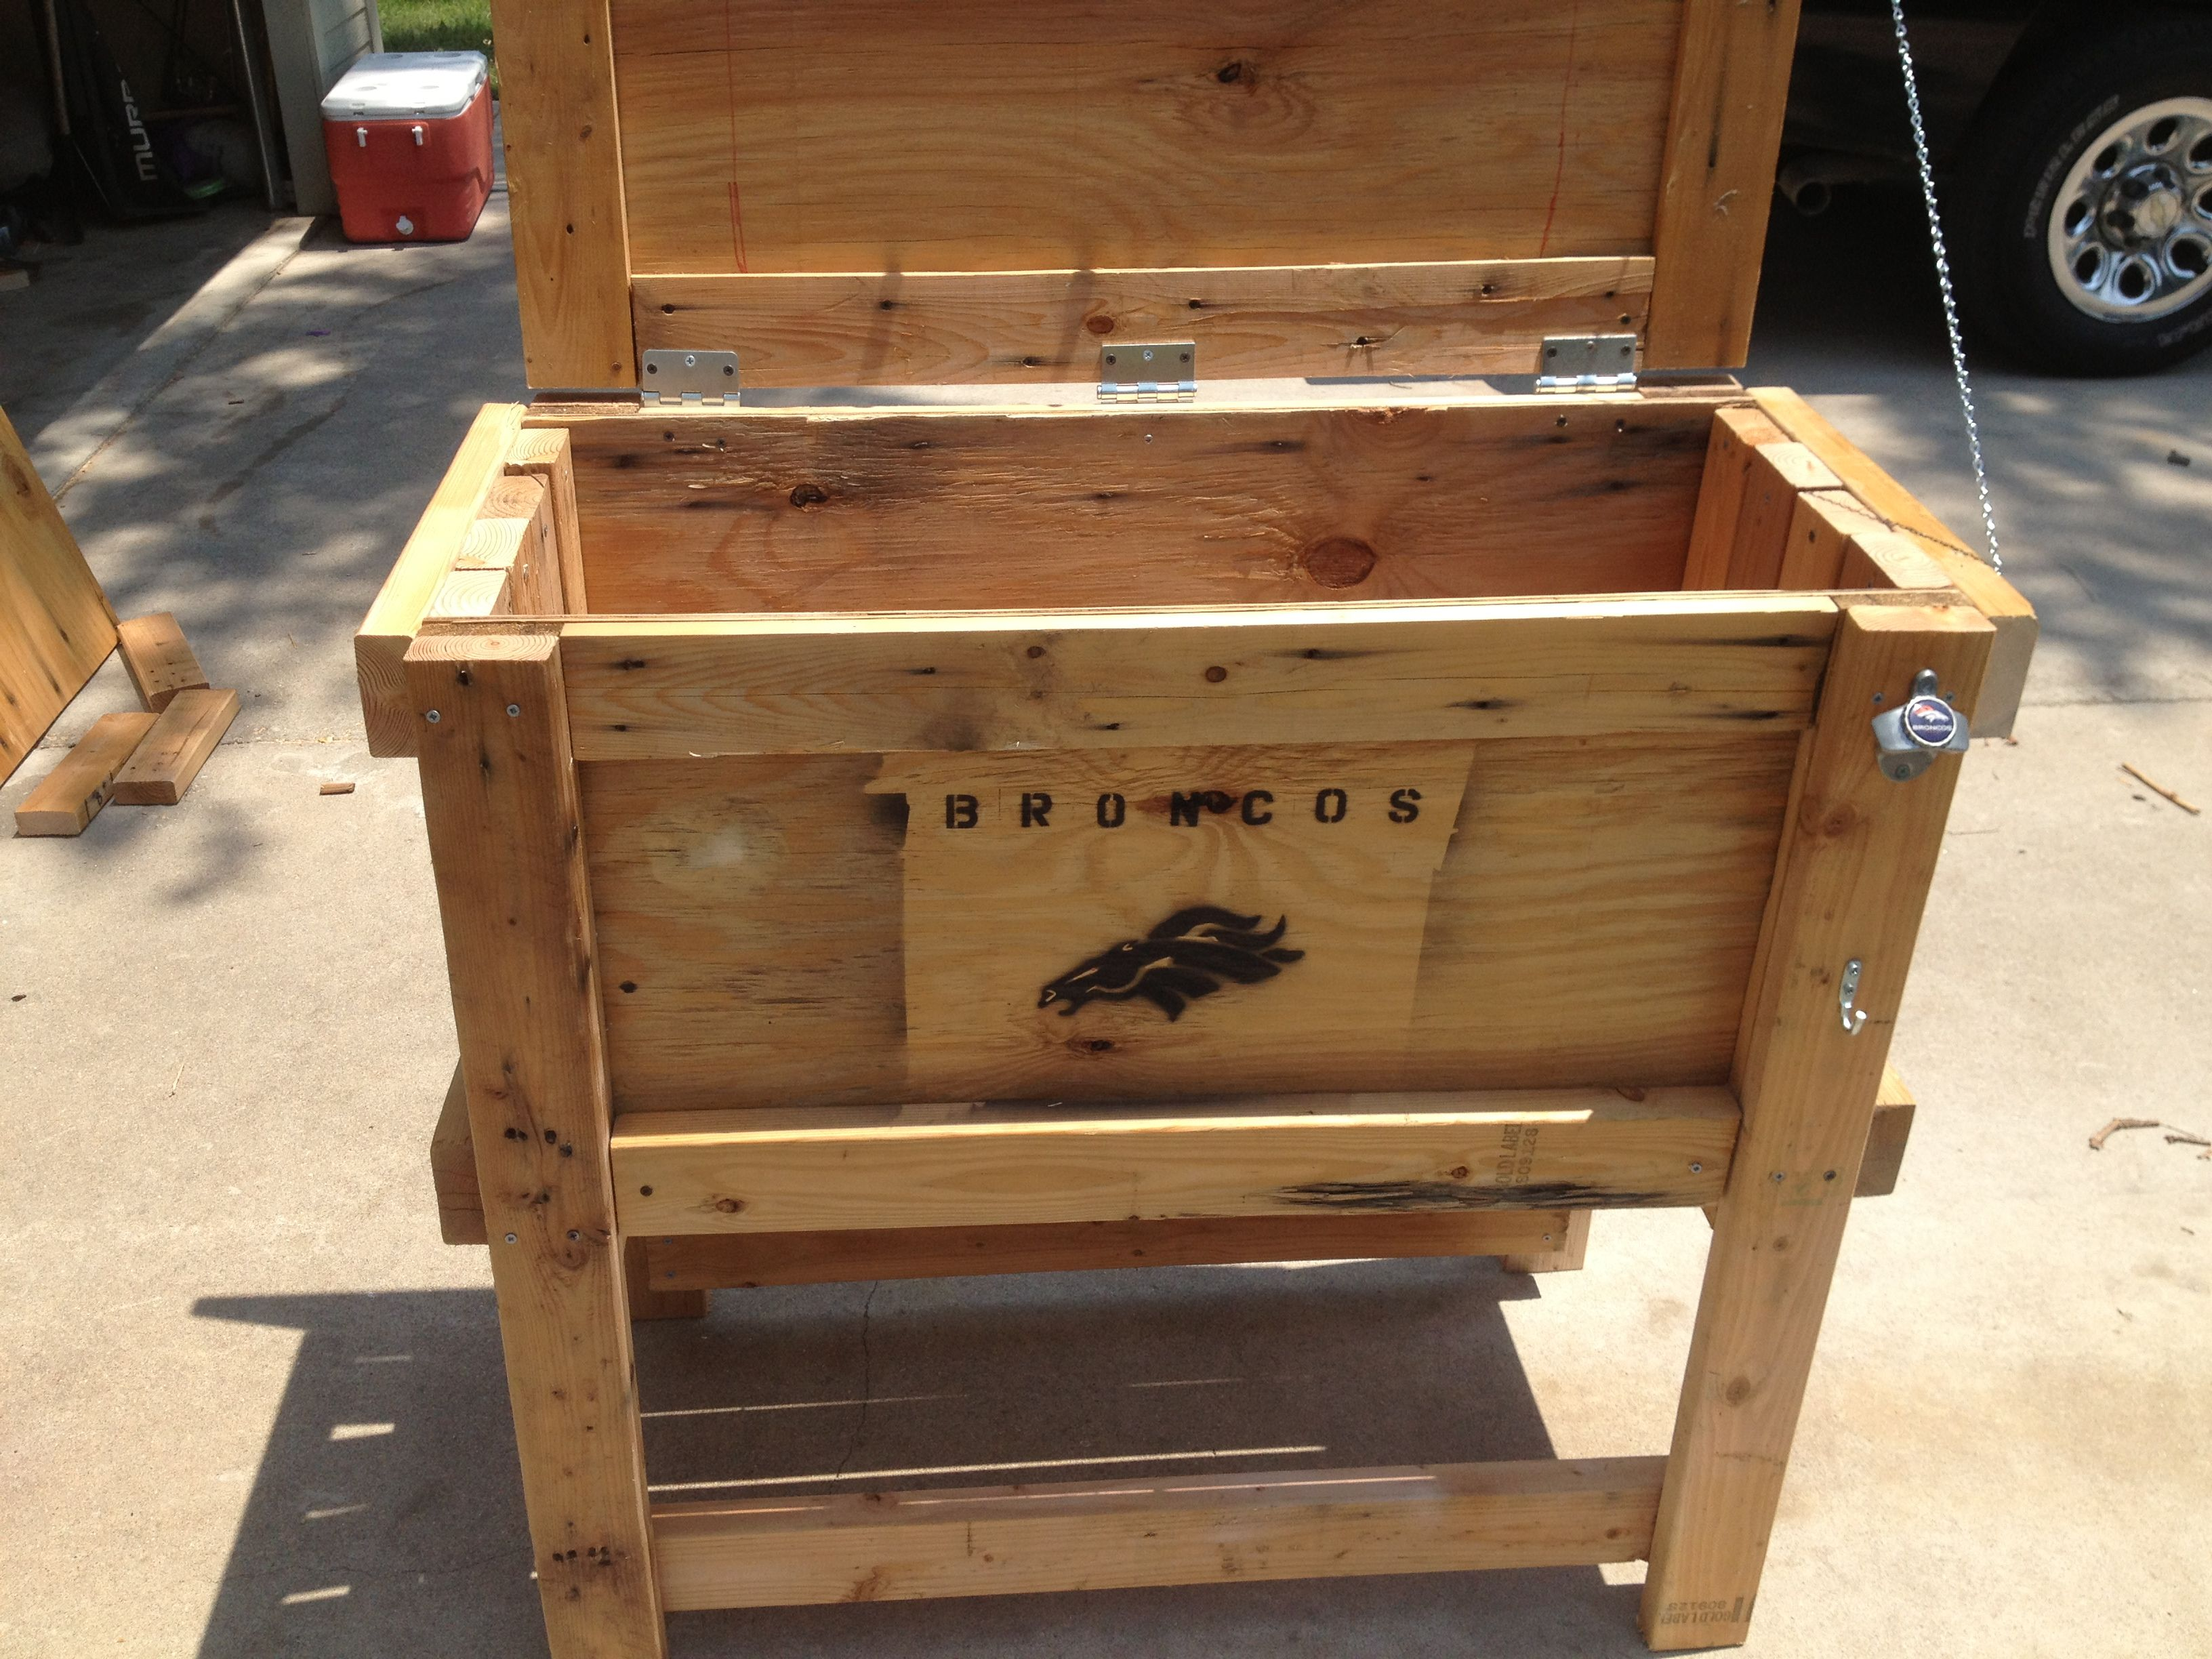 recycled wood cooler box denver broncos style bronco stuff